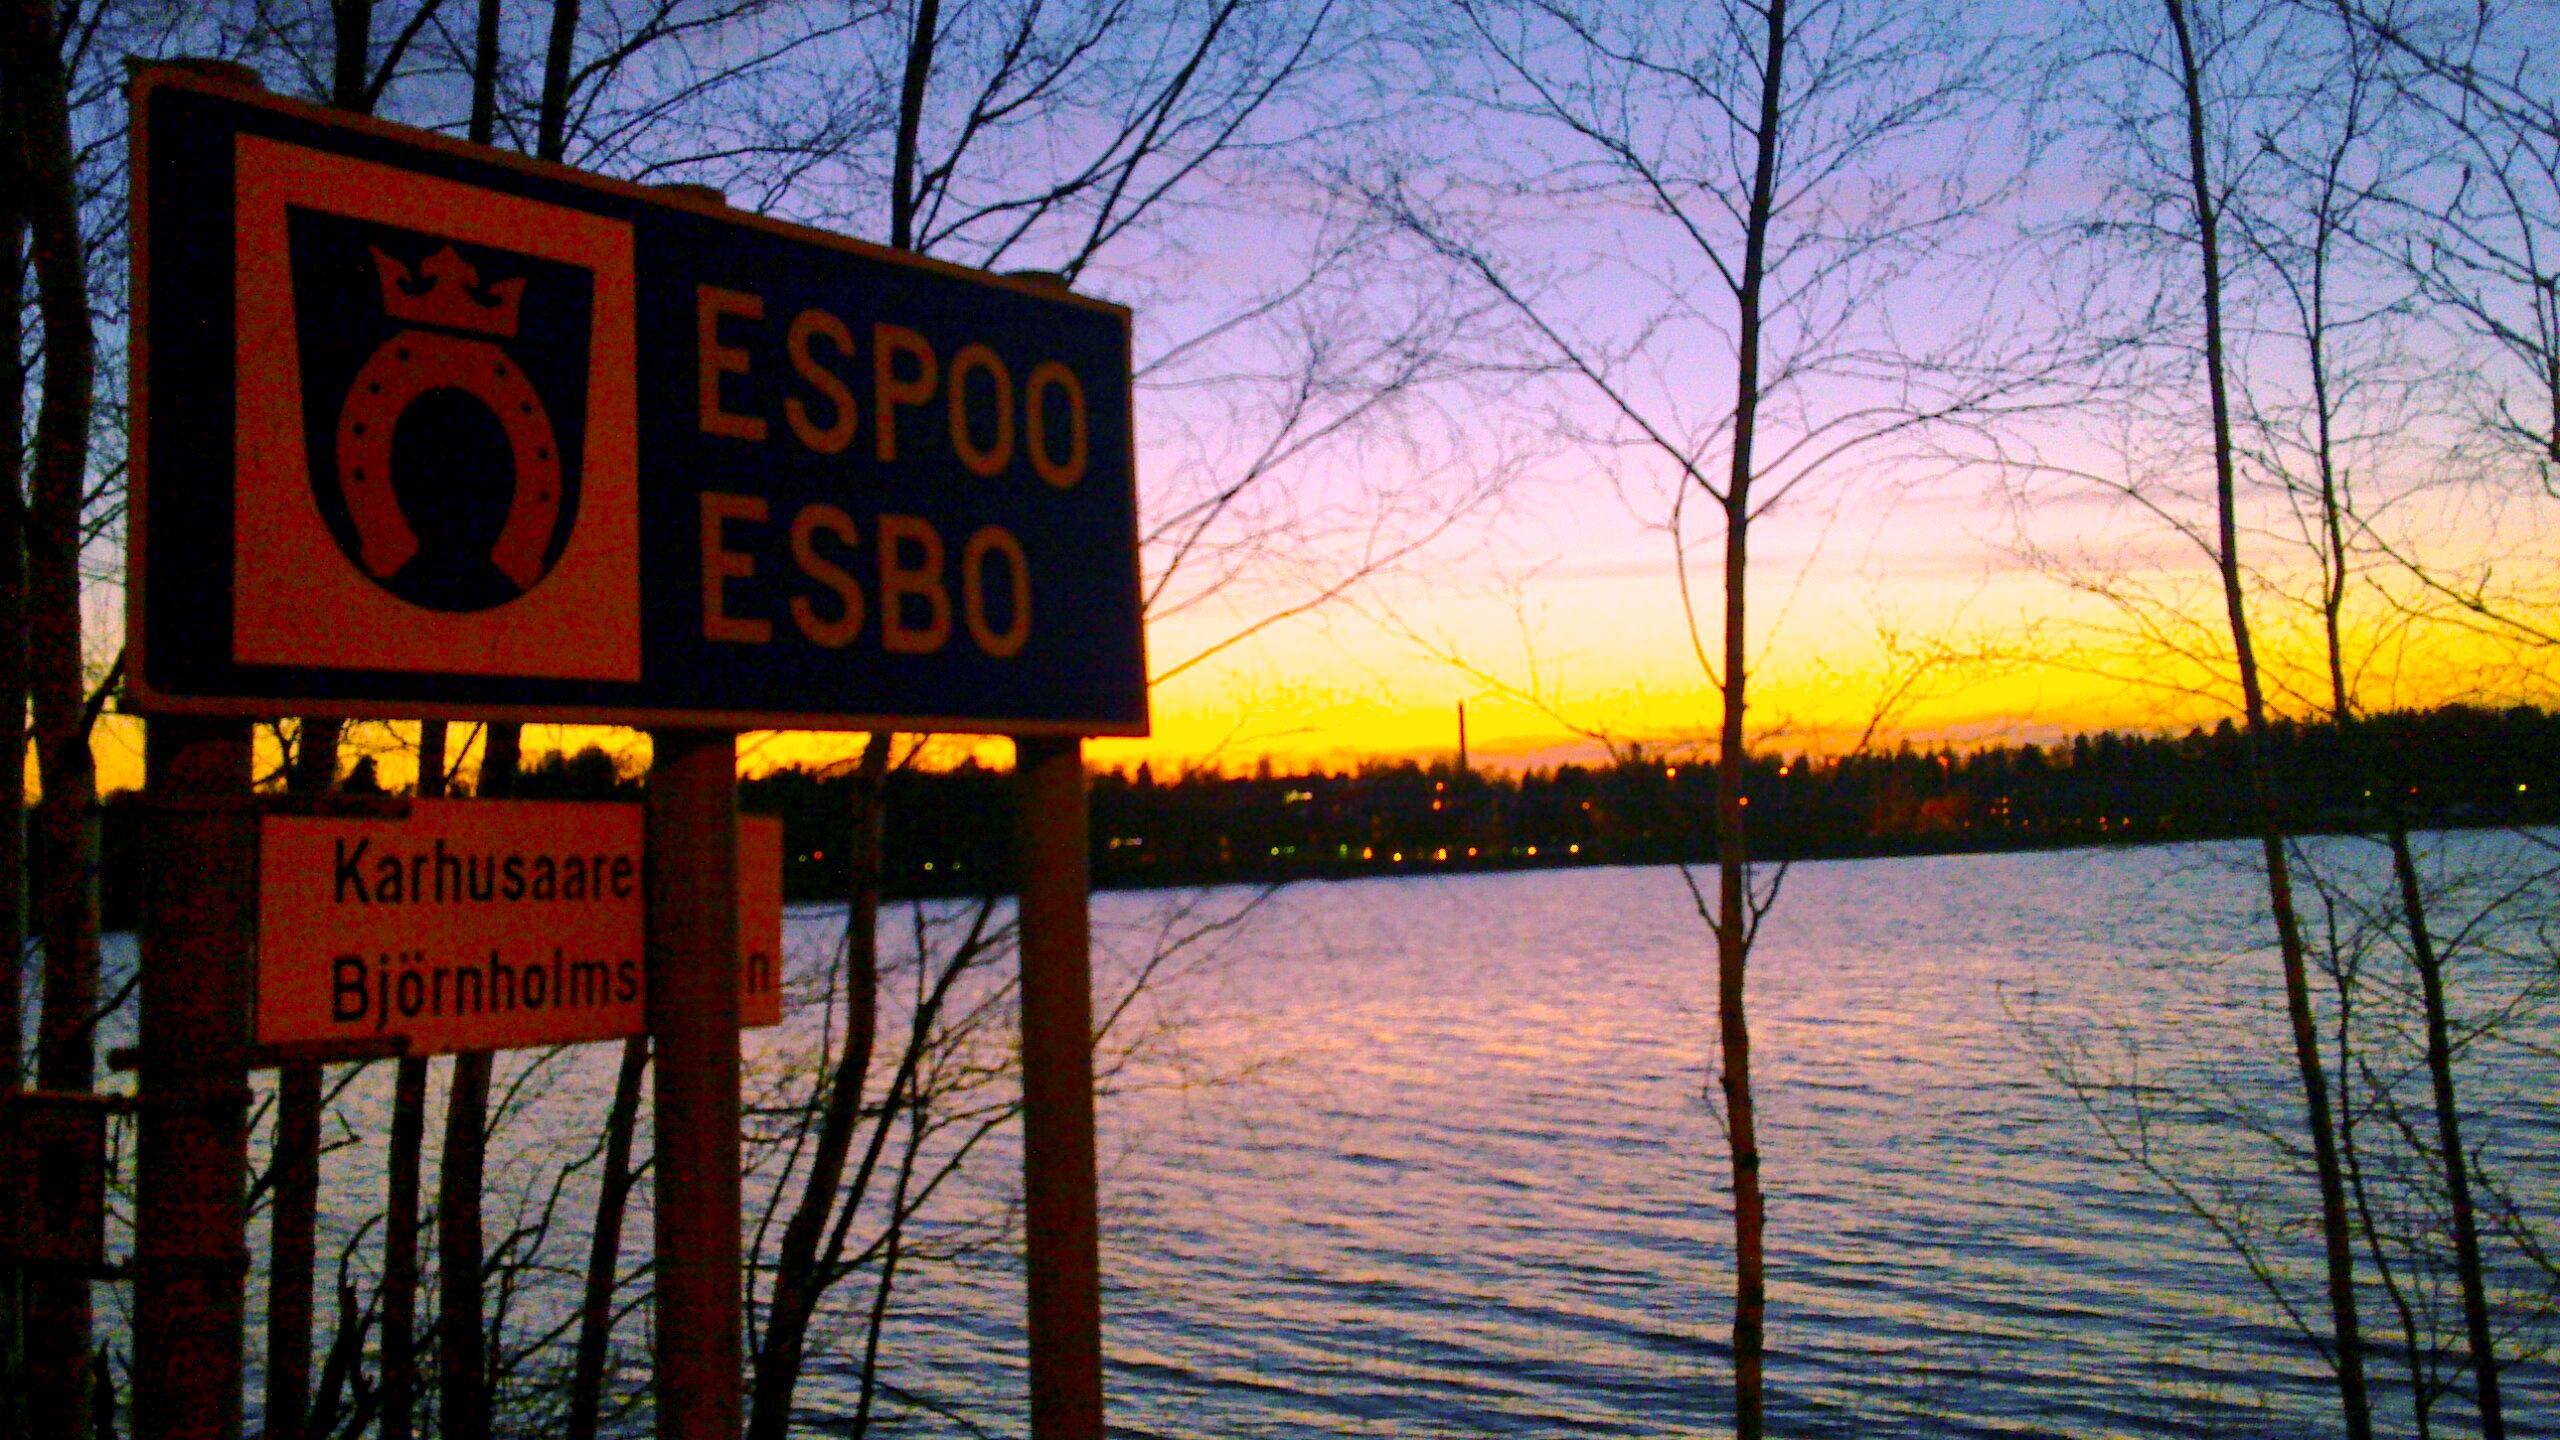 esbo | Looking for a place in the world... | Página 2